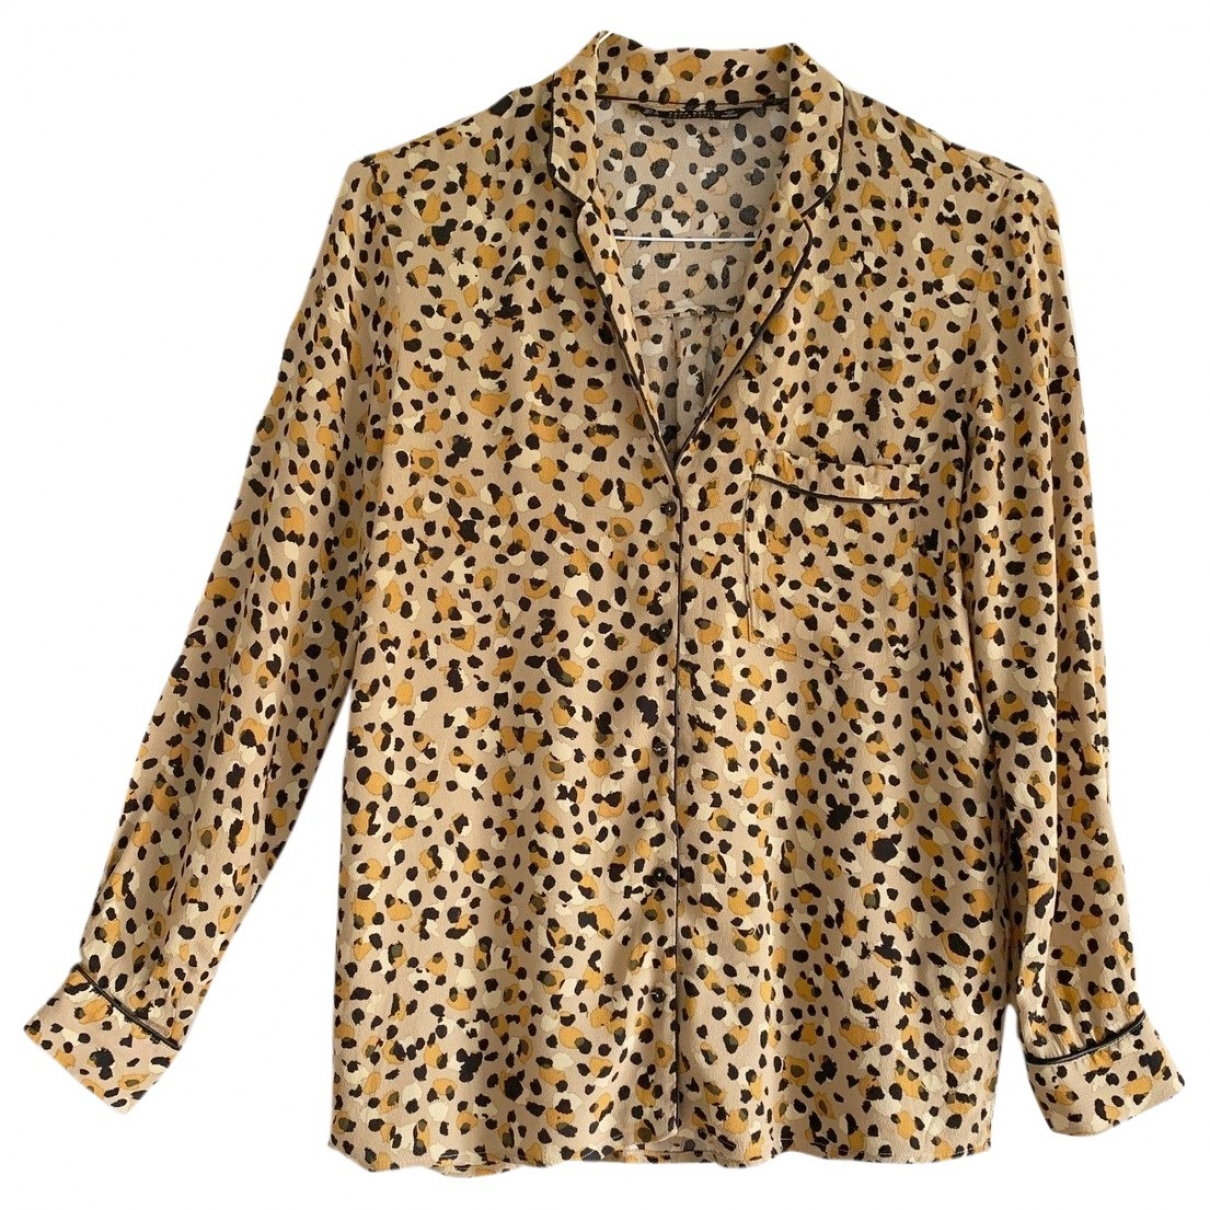 Zara \N  top for Women S International